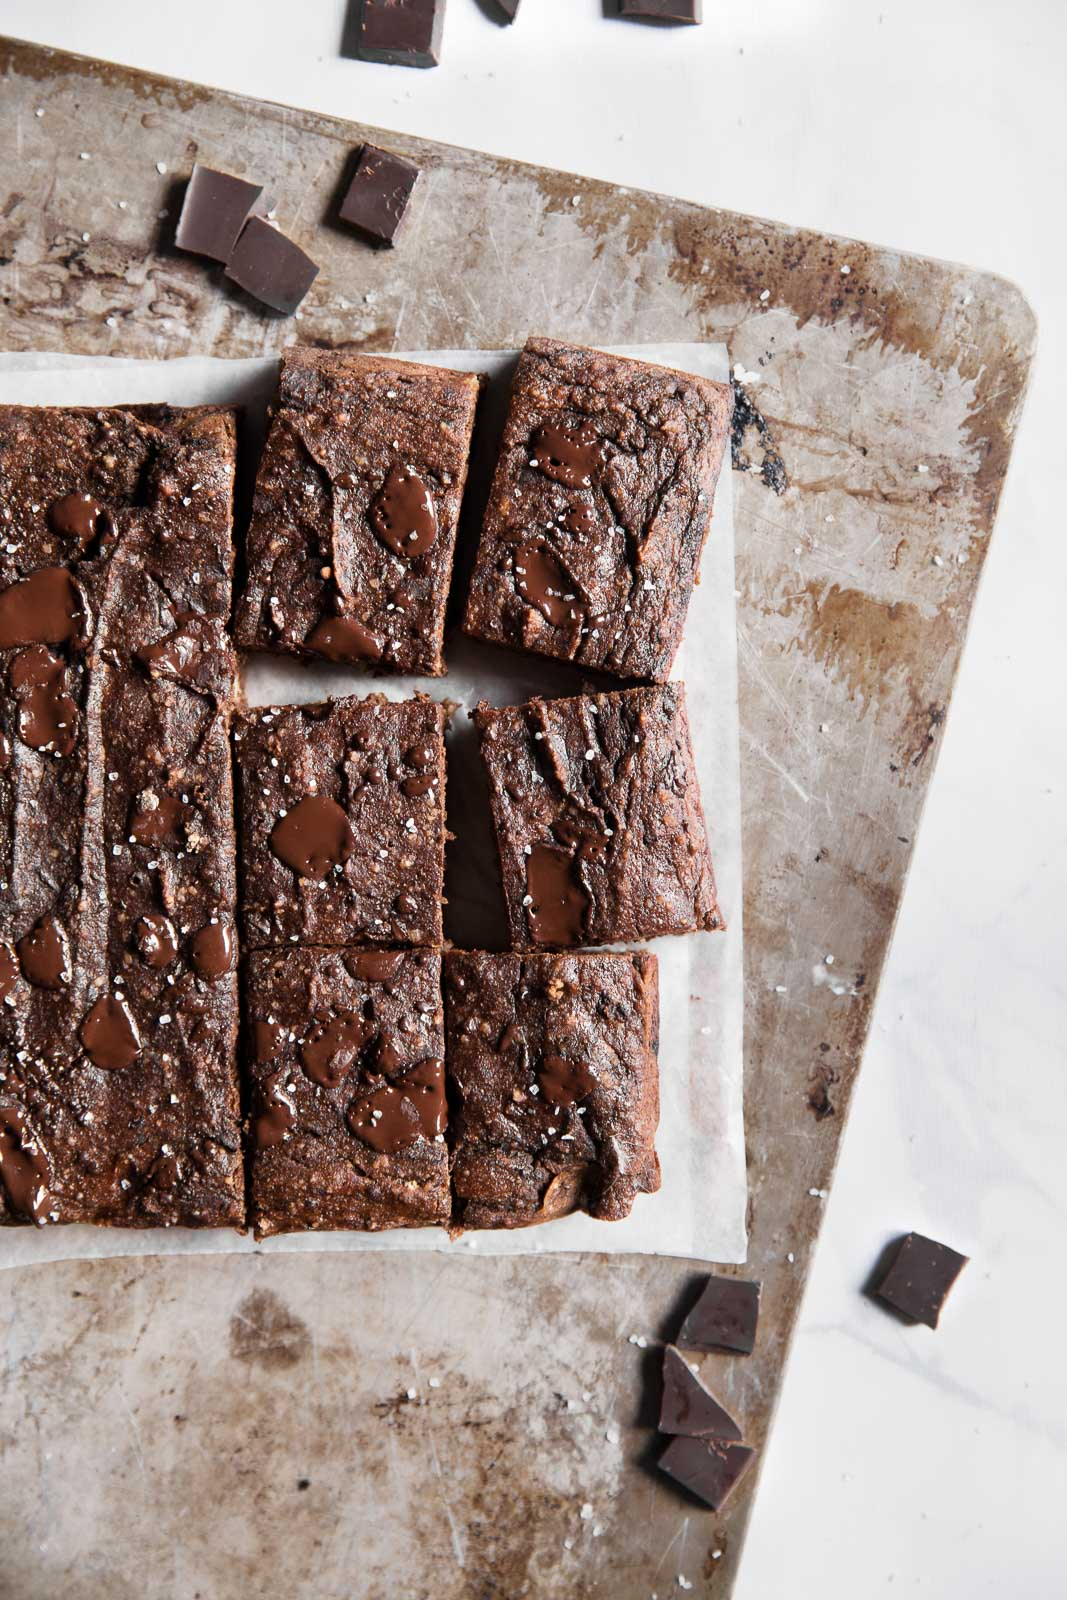 These 14 paleo dessert recipes are perfect for paleo and non-paleo eaters alike. With a mix of cookies, bars and muffins - there's something for everyone!